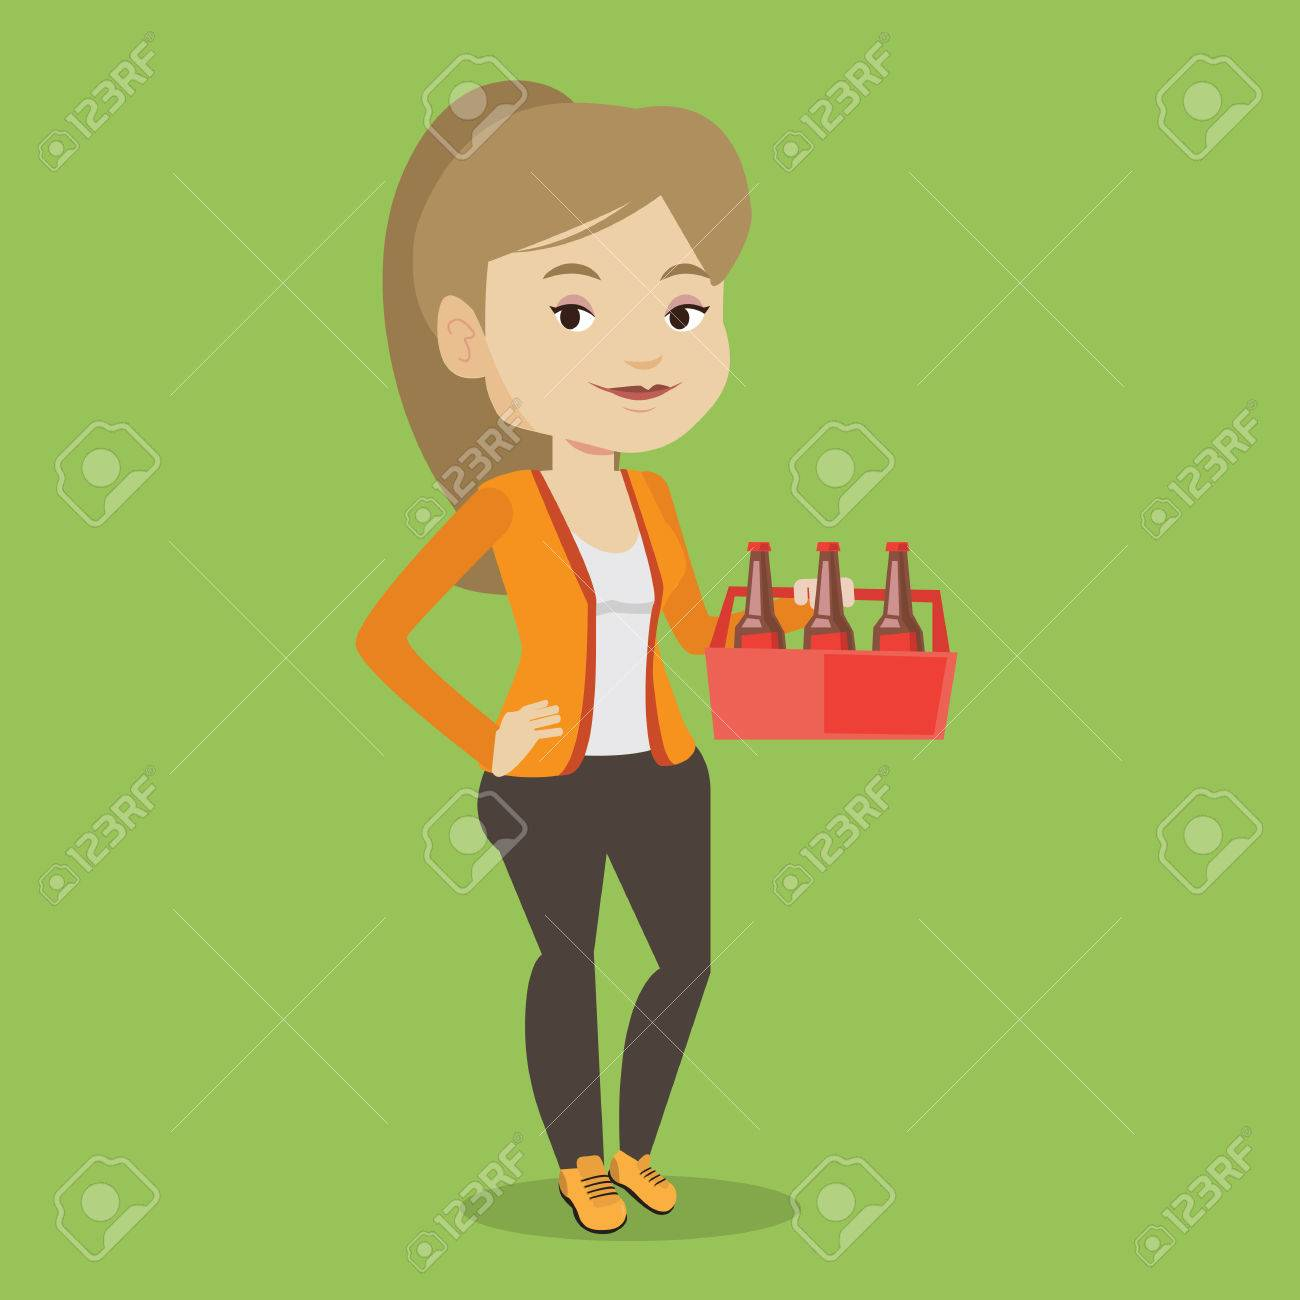 Young Happy Woman Holding Pack Of Beer Full Length Of Cheerful Royalty Free Cliparts Vectors And Stock Illustration Image 67392705